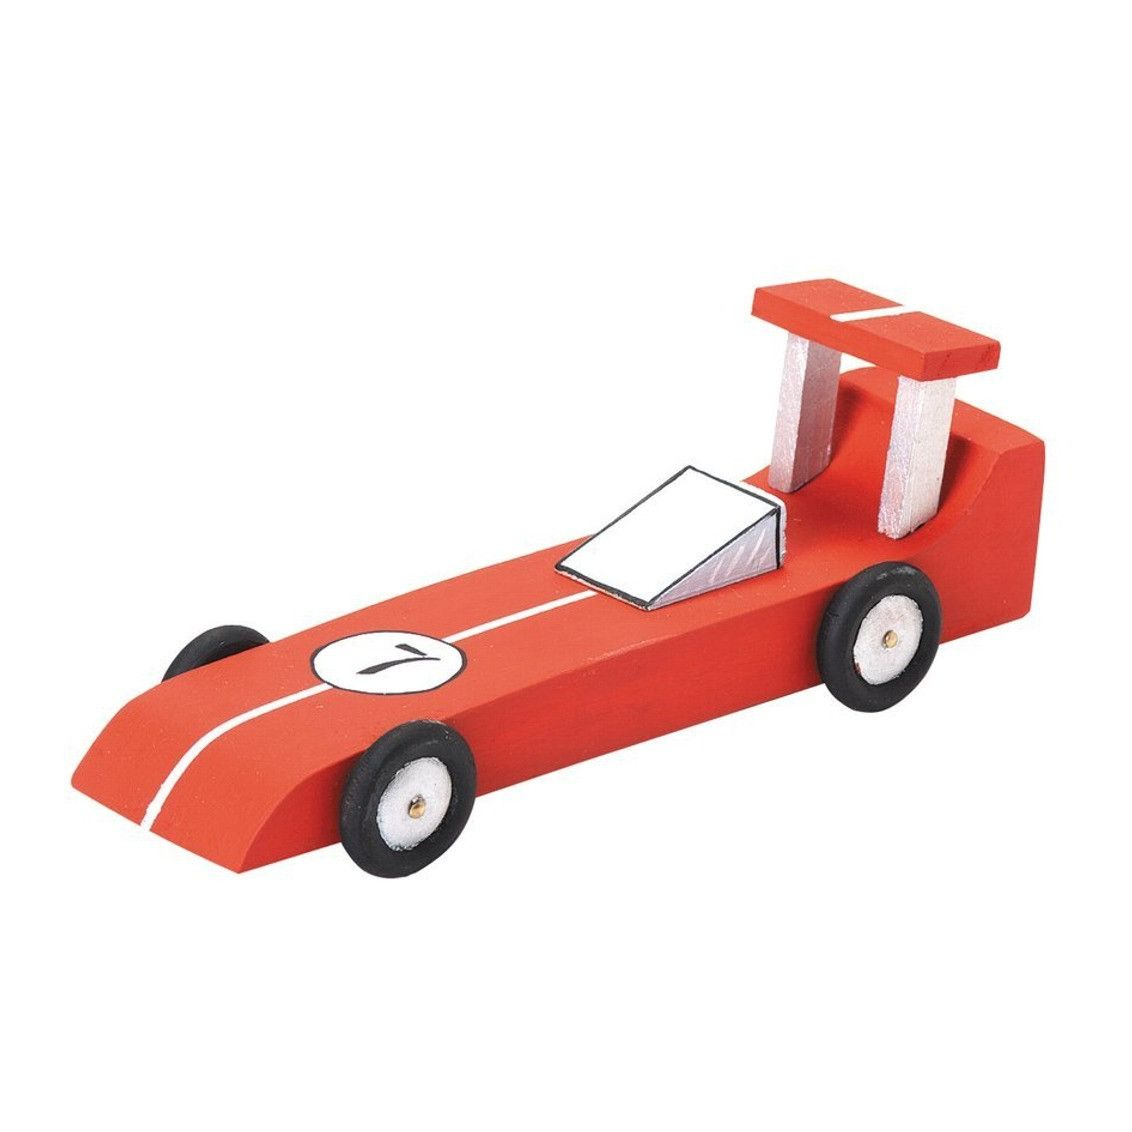 Unfinished Race Car Wood Craft Kit